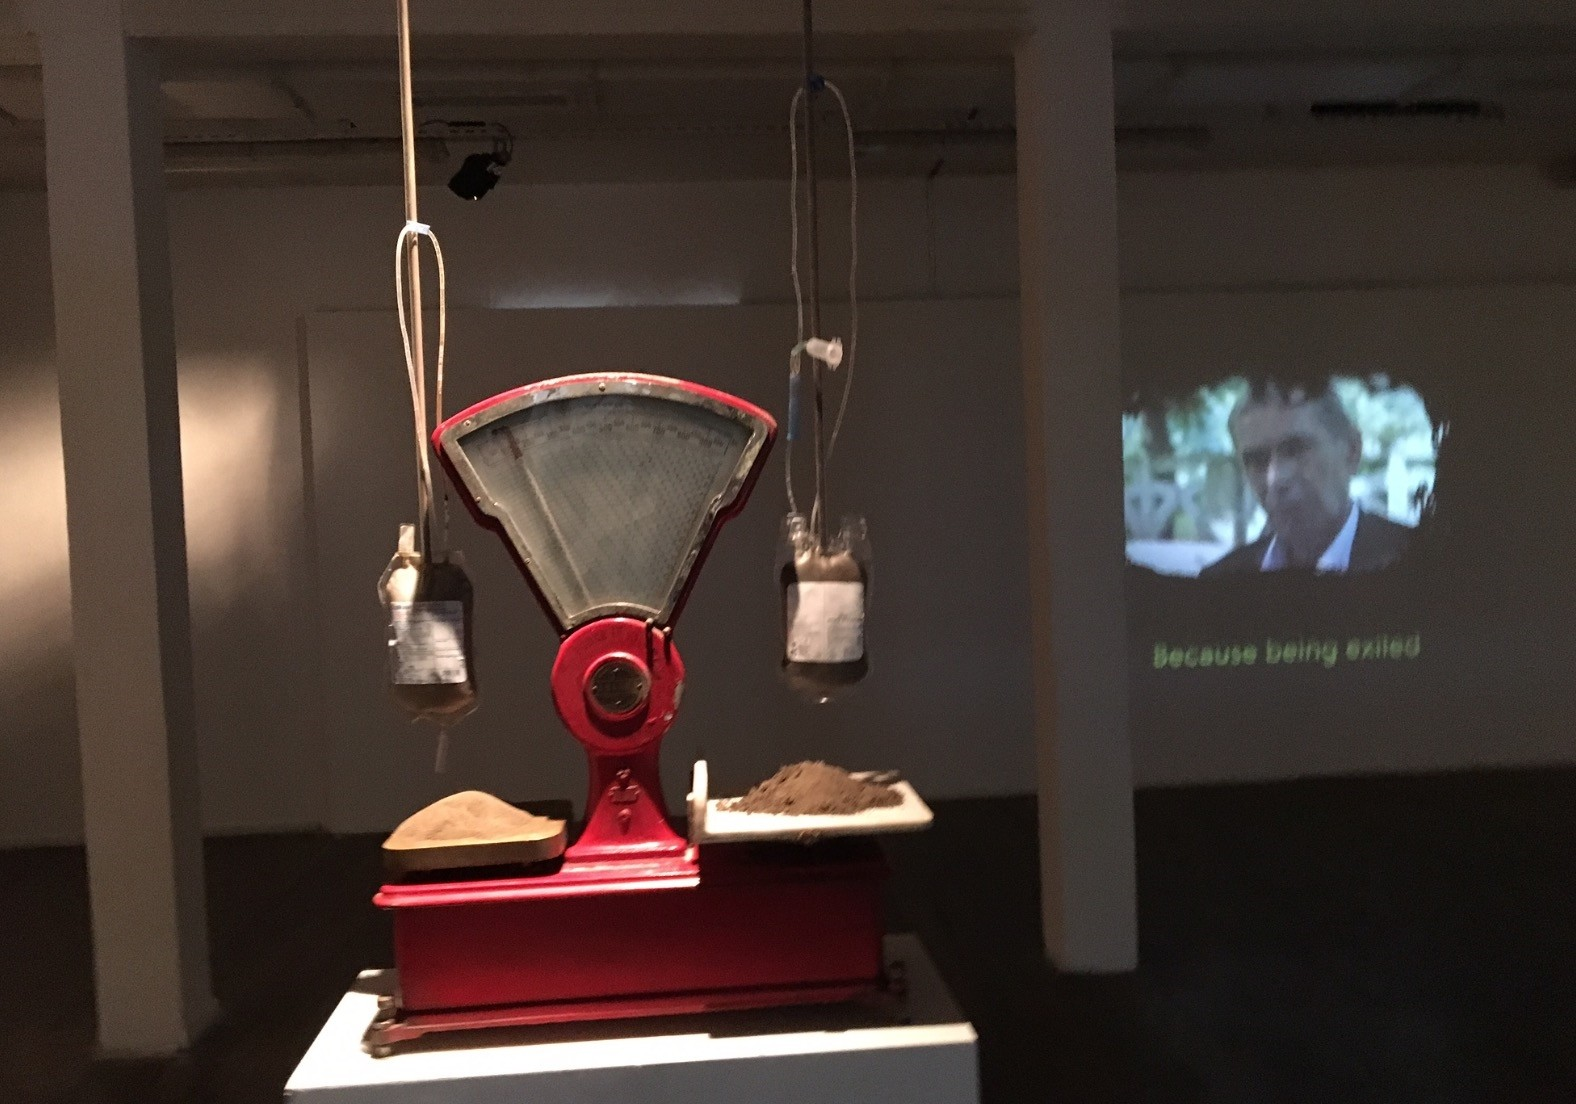 Circulatory Shock is the centerpiece at Deletion Makrs, a poetic metaphor of blood and soil in the midst of history and memory.